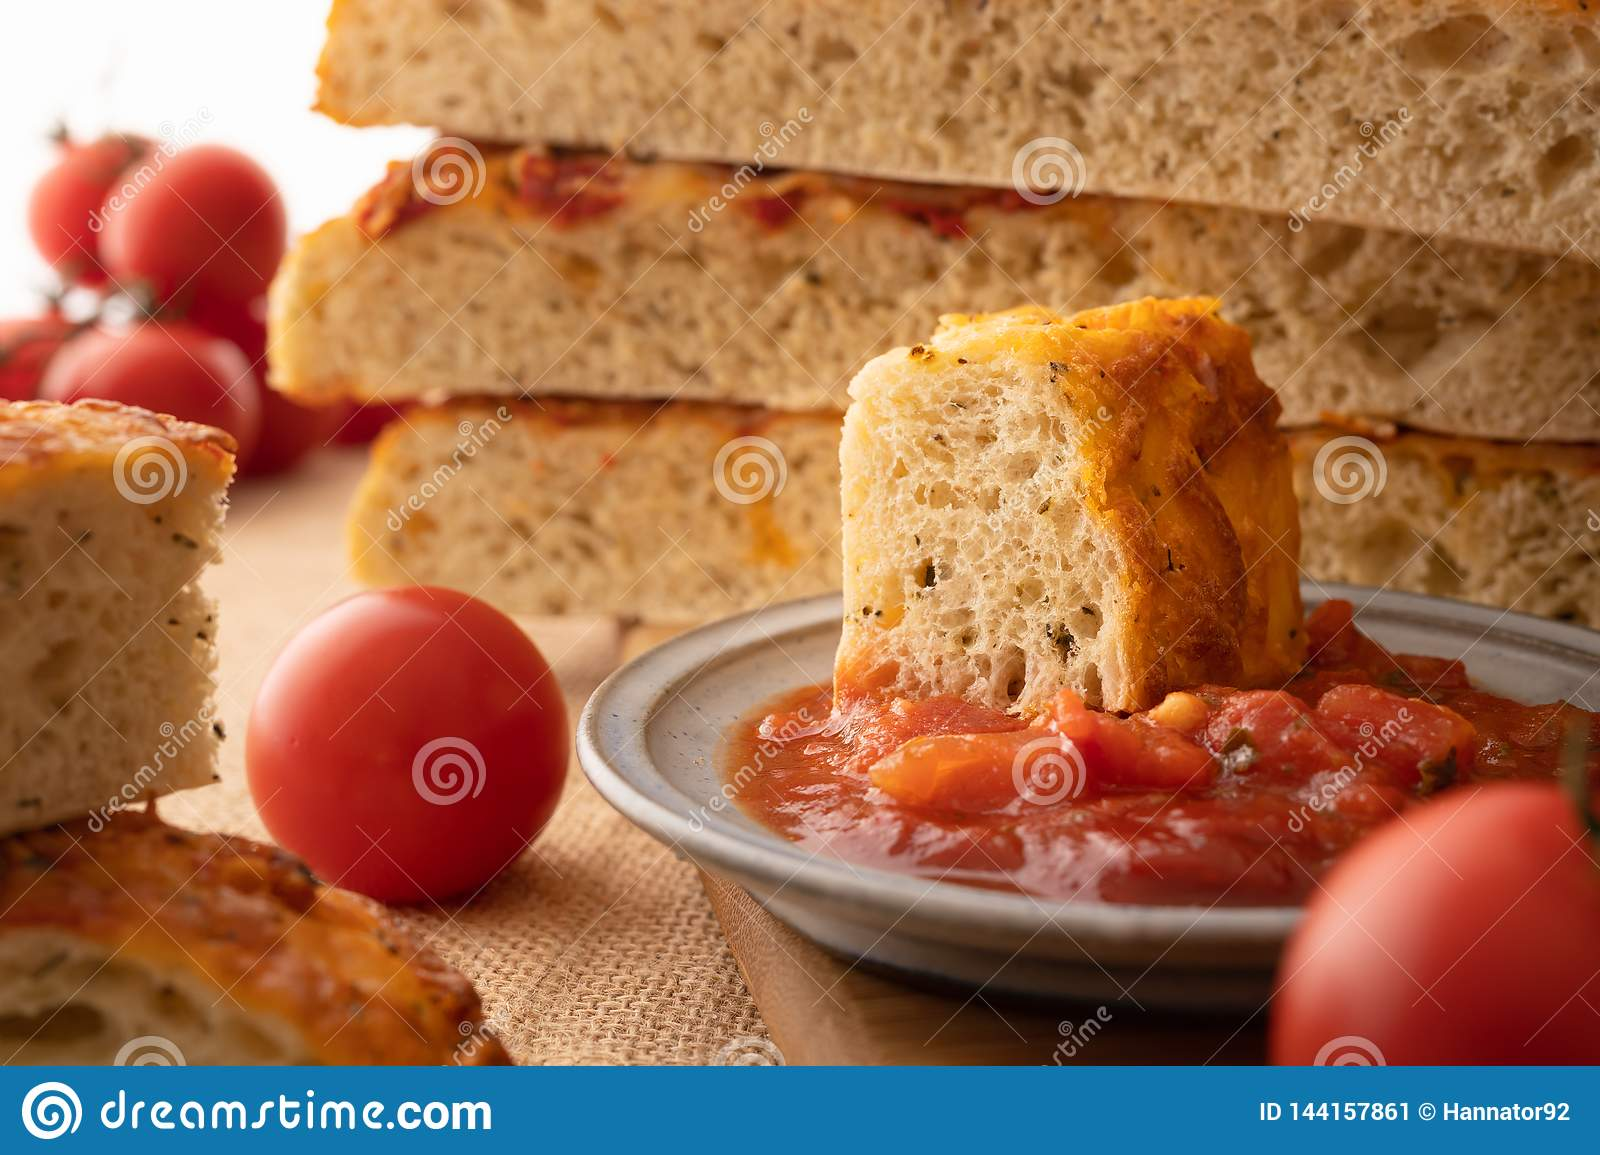 Focaccia Homemade Italian Bread Tomatoes And Bruschetta Stock Image Image Of Bruschetta Bread 144157861